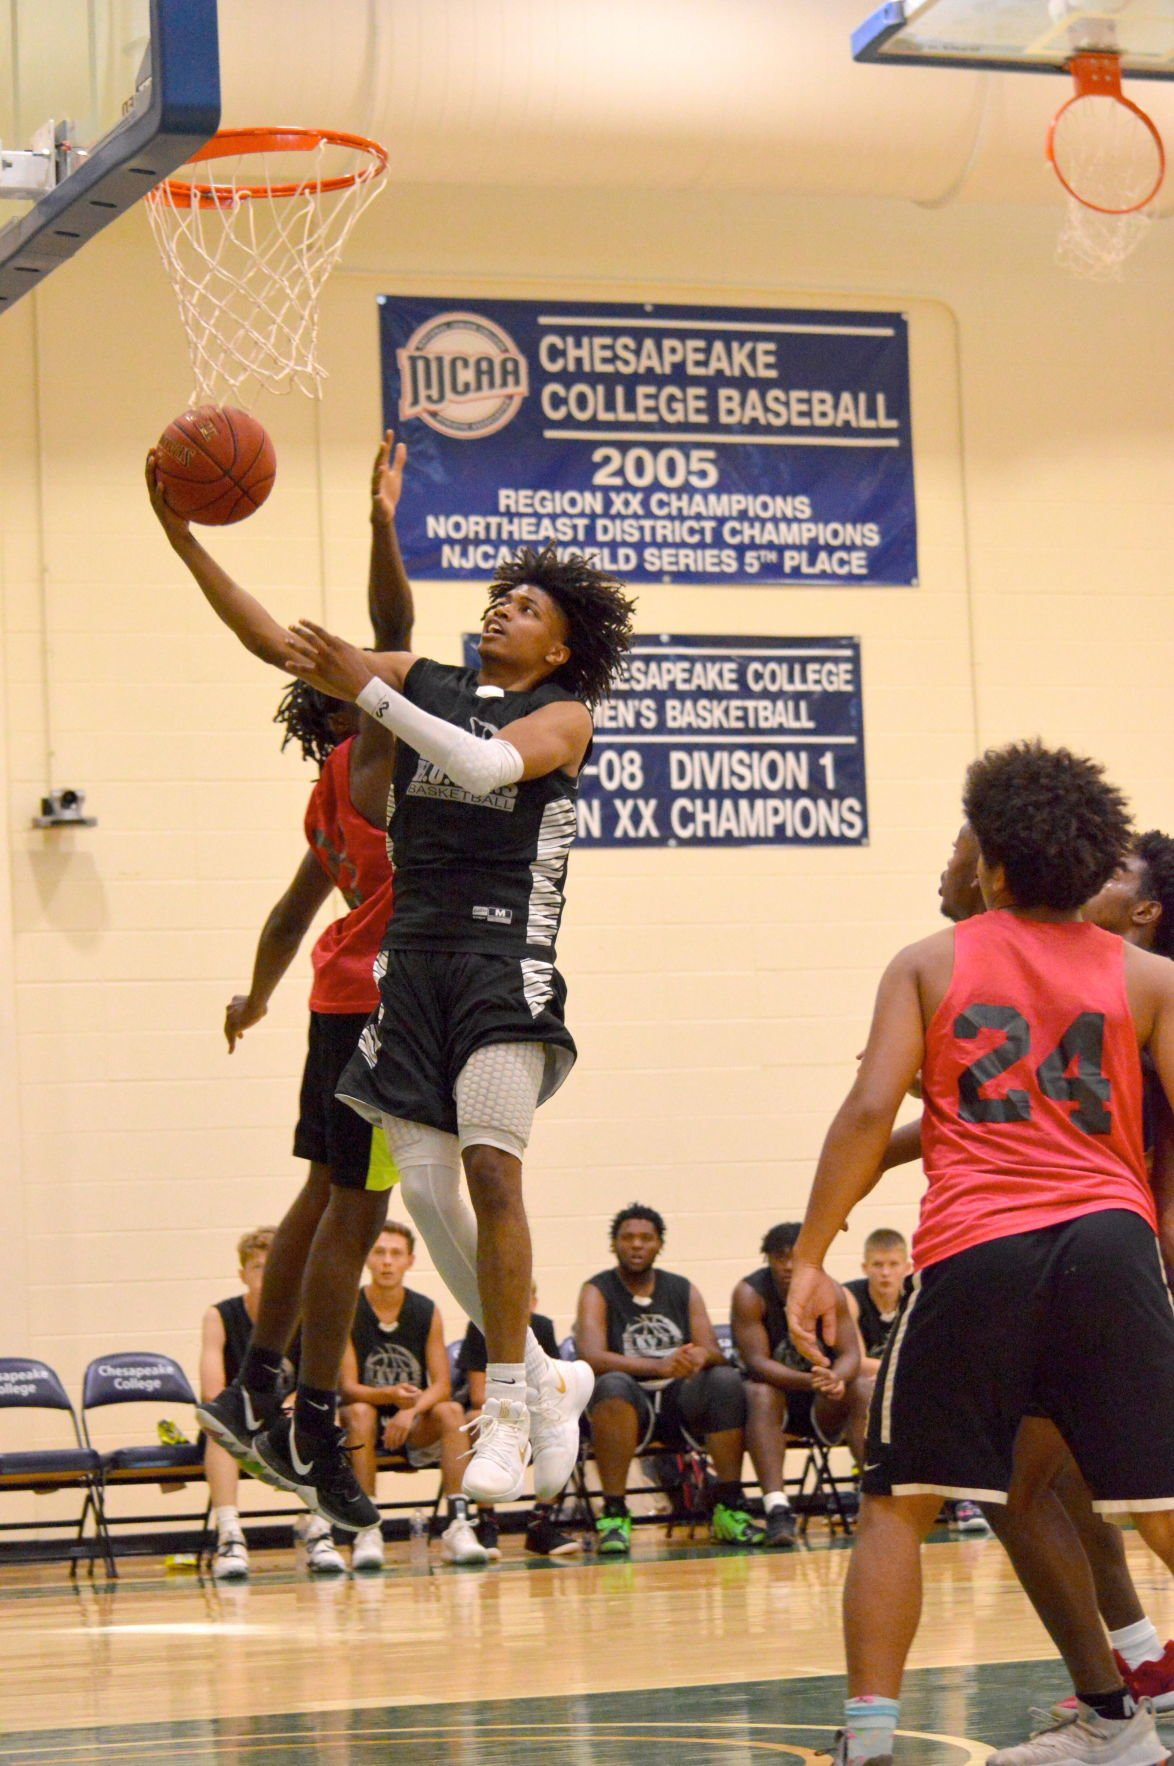 Bayside H.O.Y.A.S. win Chesapeake Summer Basketball League championship